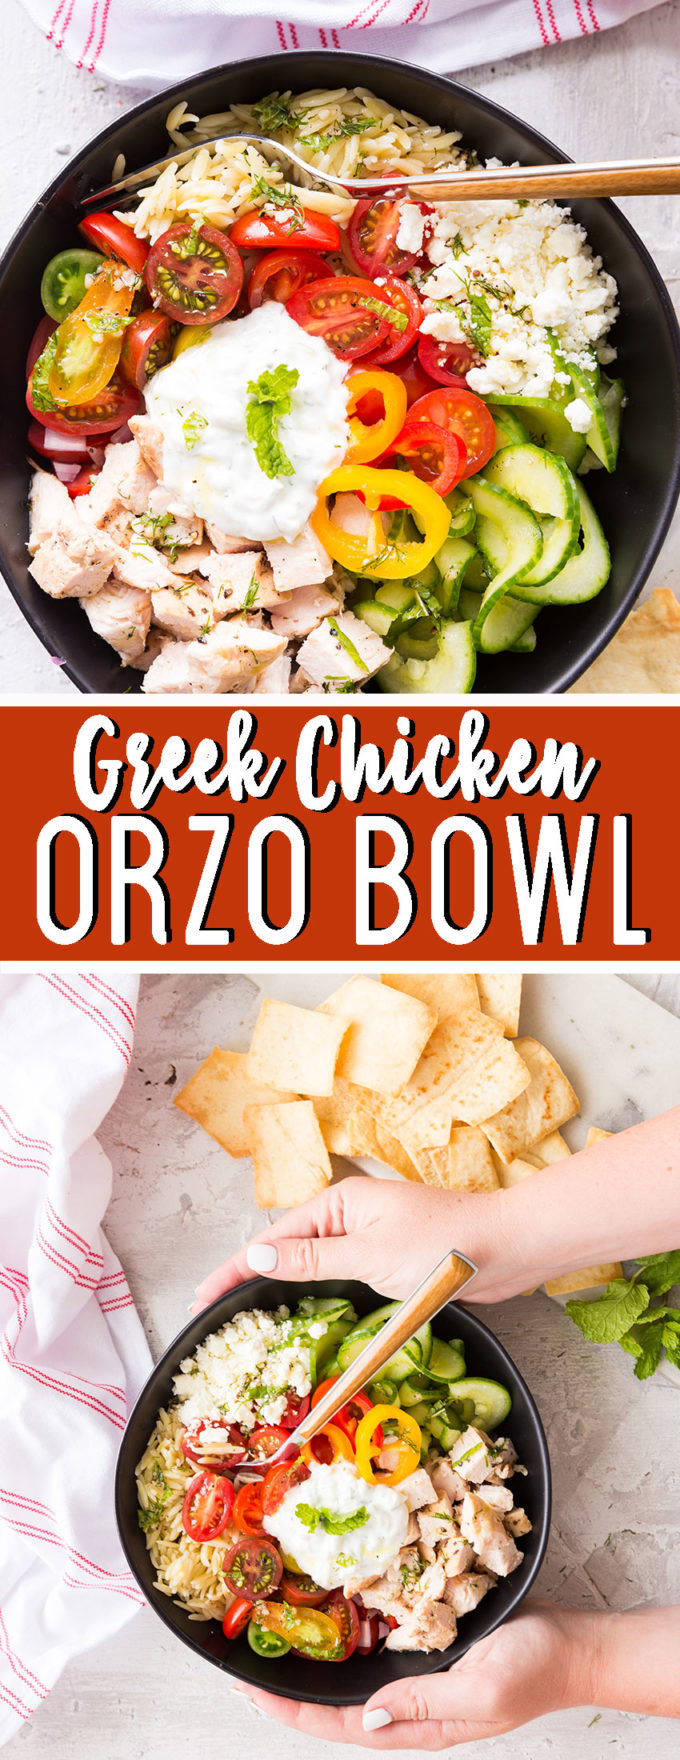 Easy to make Greek Chicken orzo bowl.